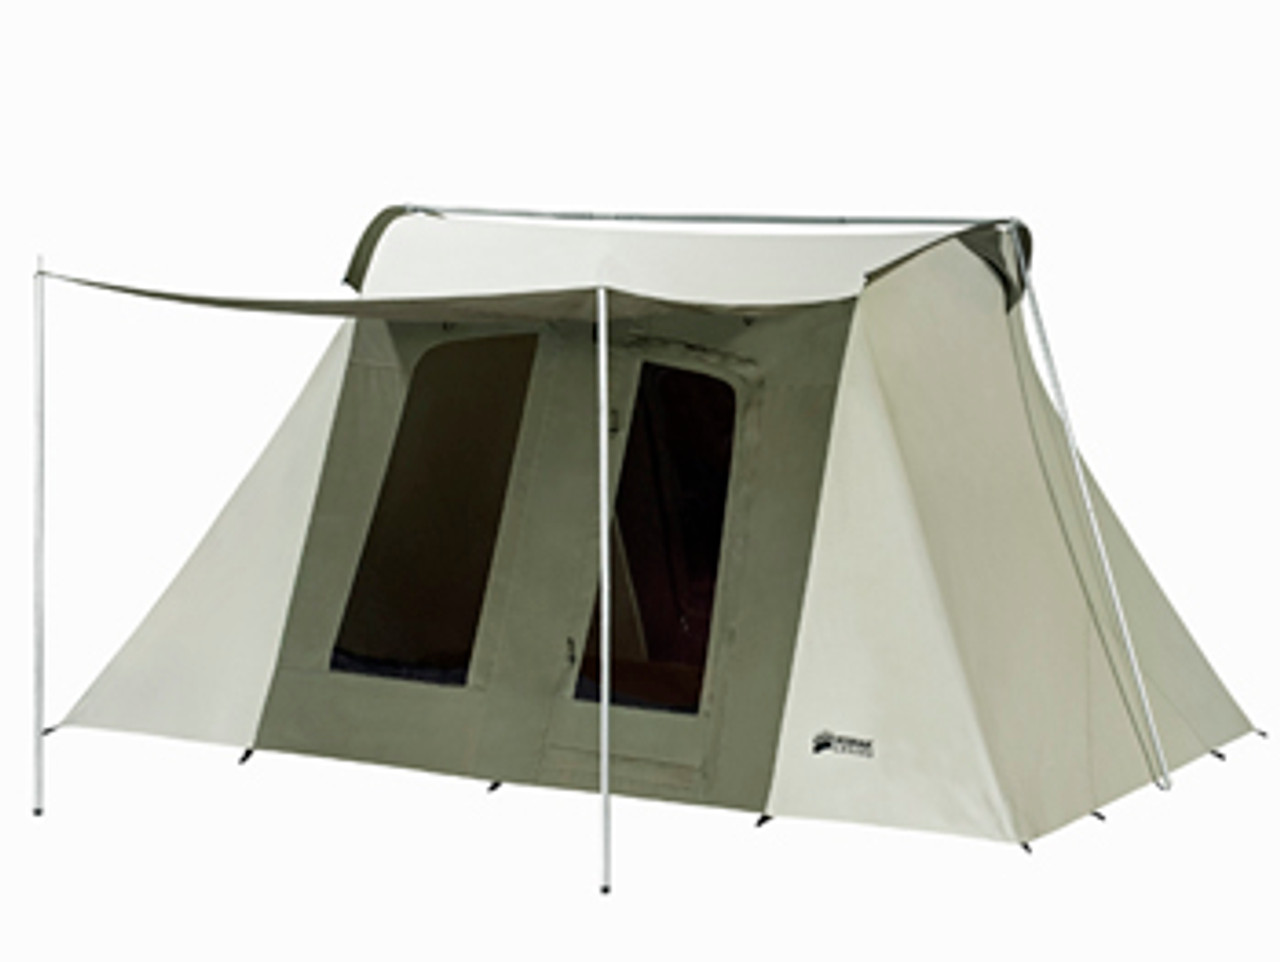 10 x 14 ft. Flex-Bow Canvas Tent - Deluxe